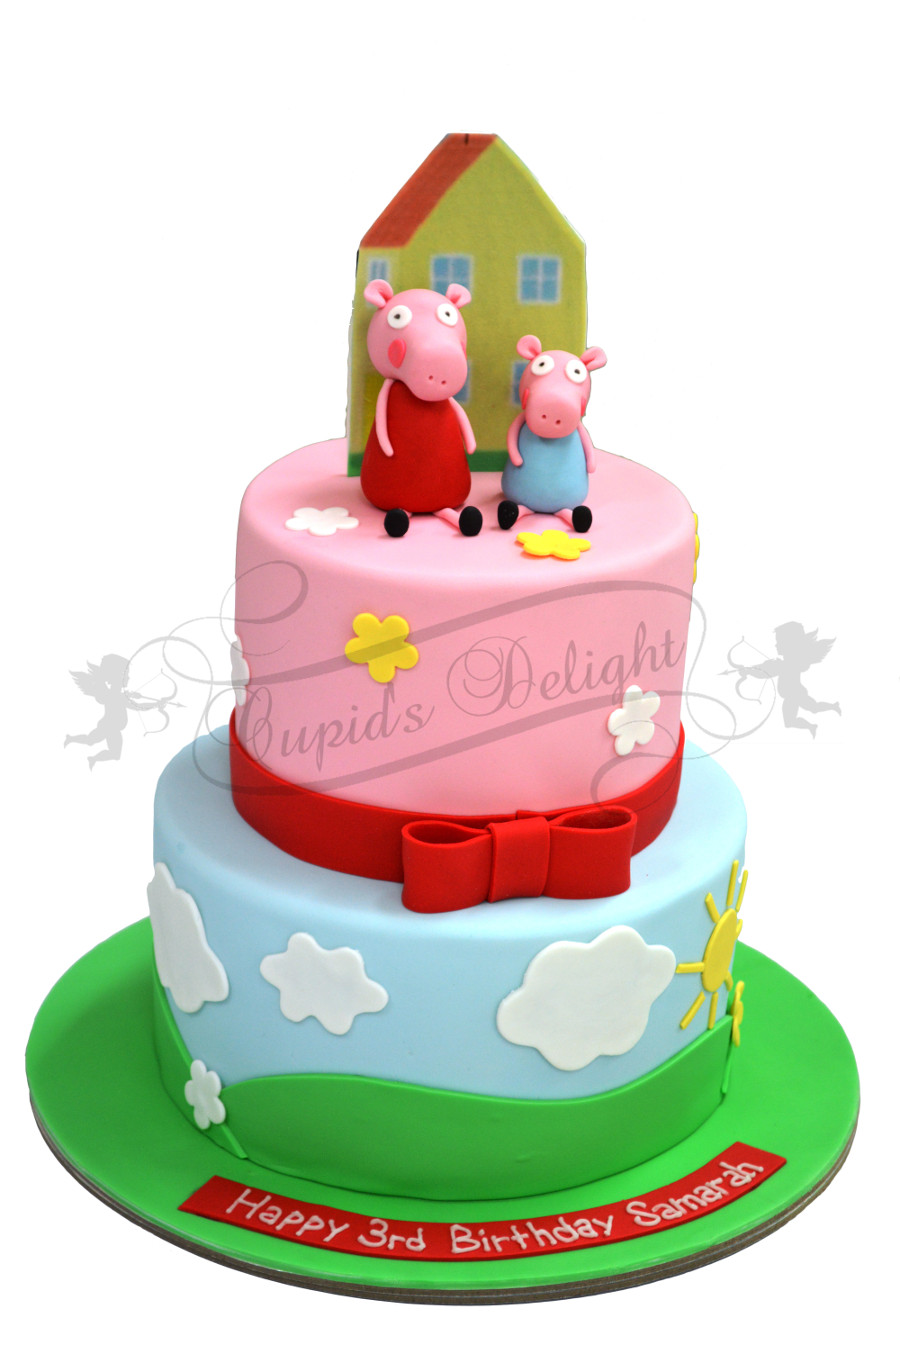 Custom Made Birthday Cakes Perth